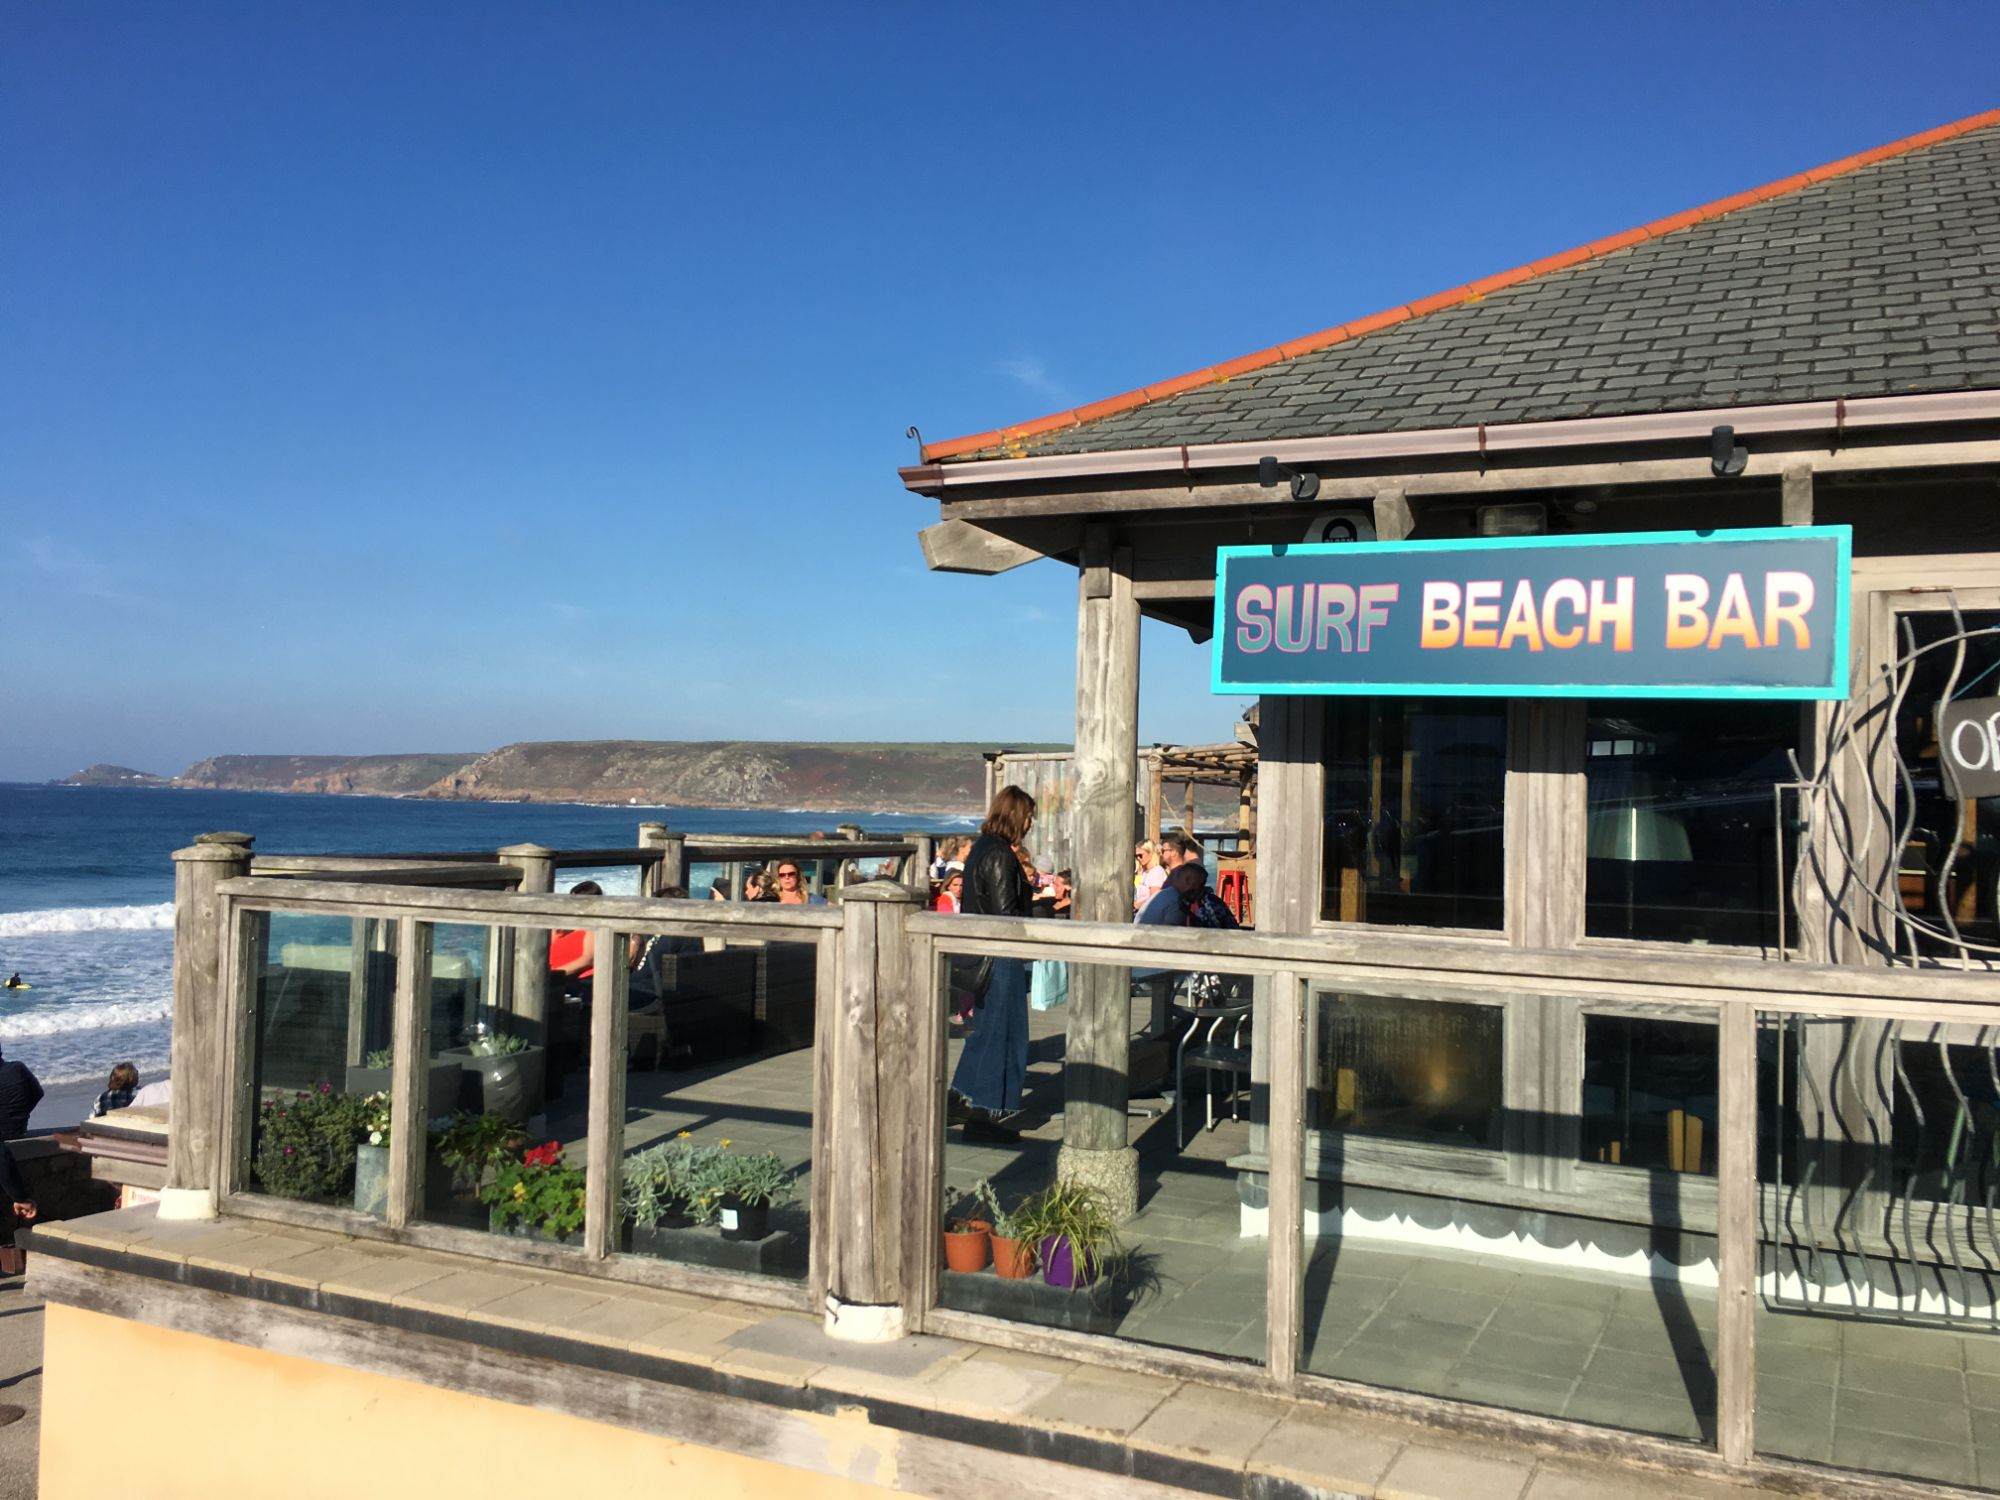 Surf beach bar and cafe Sennen Cove